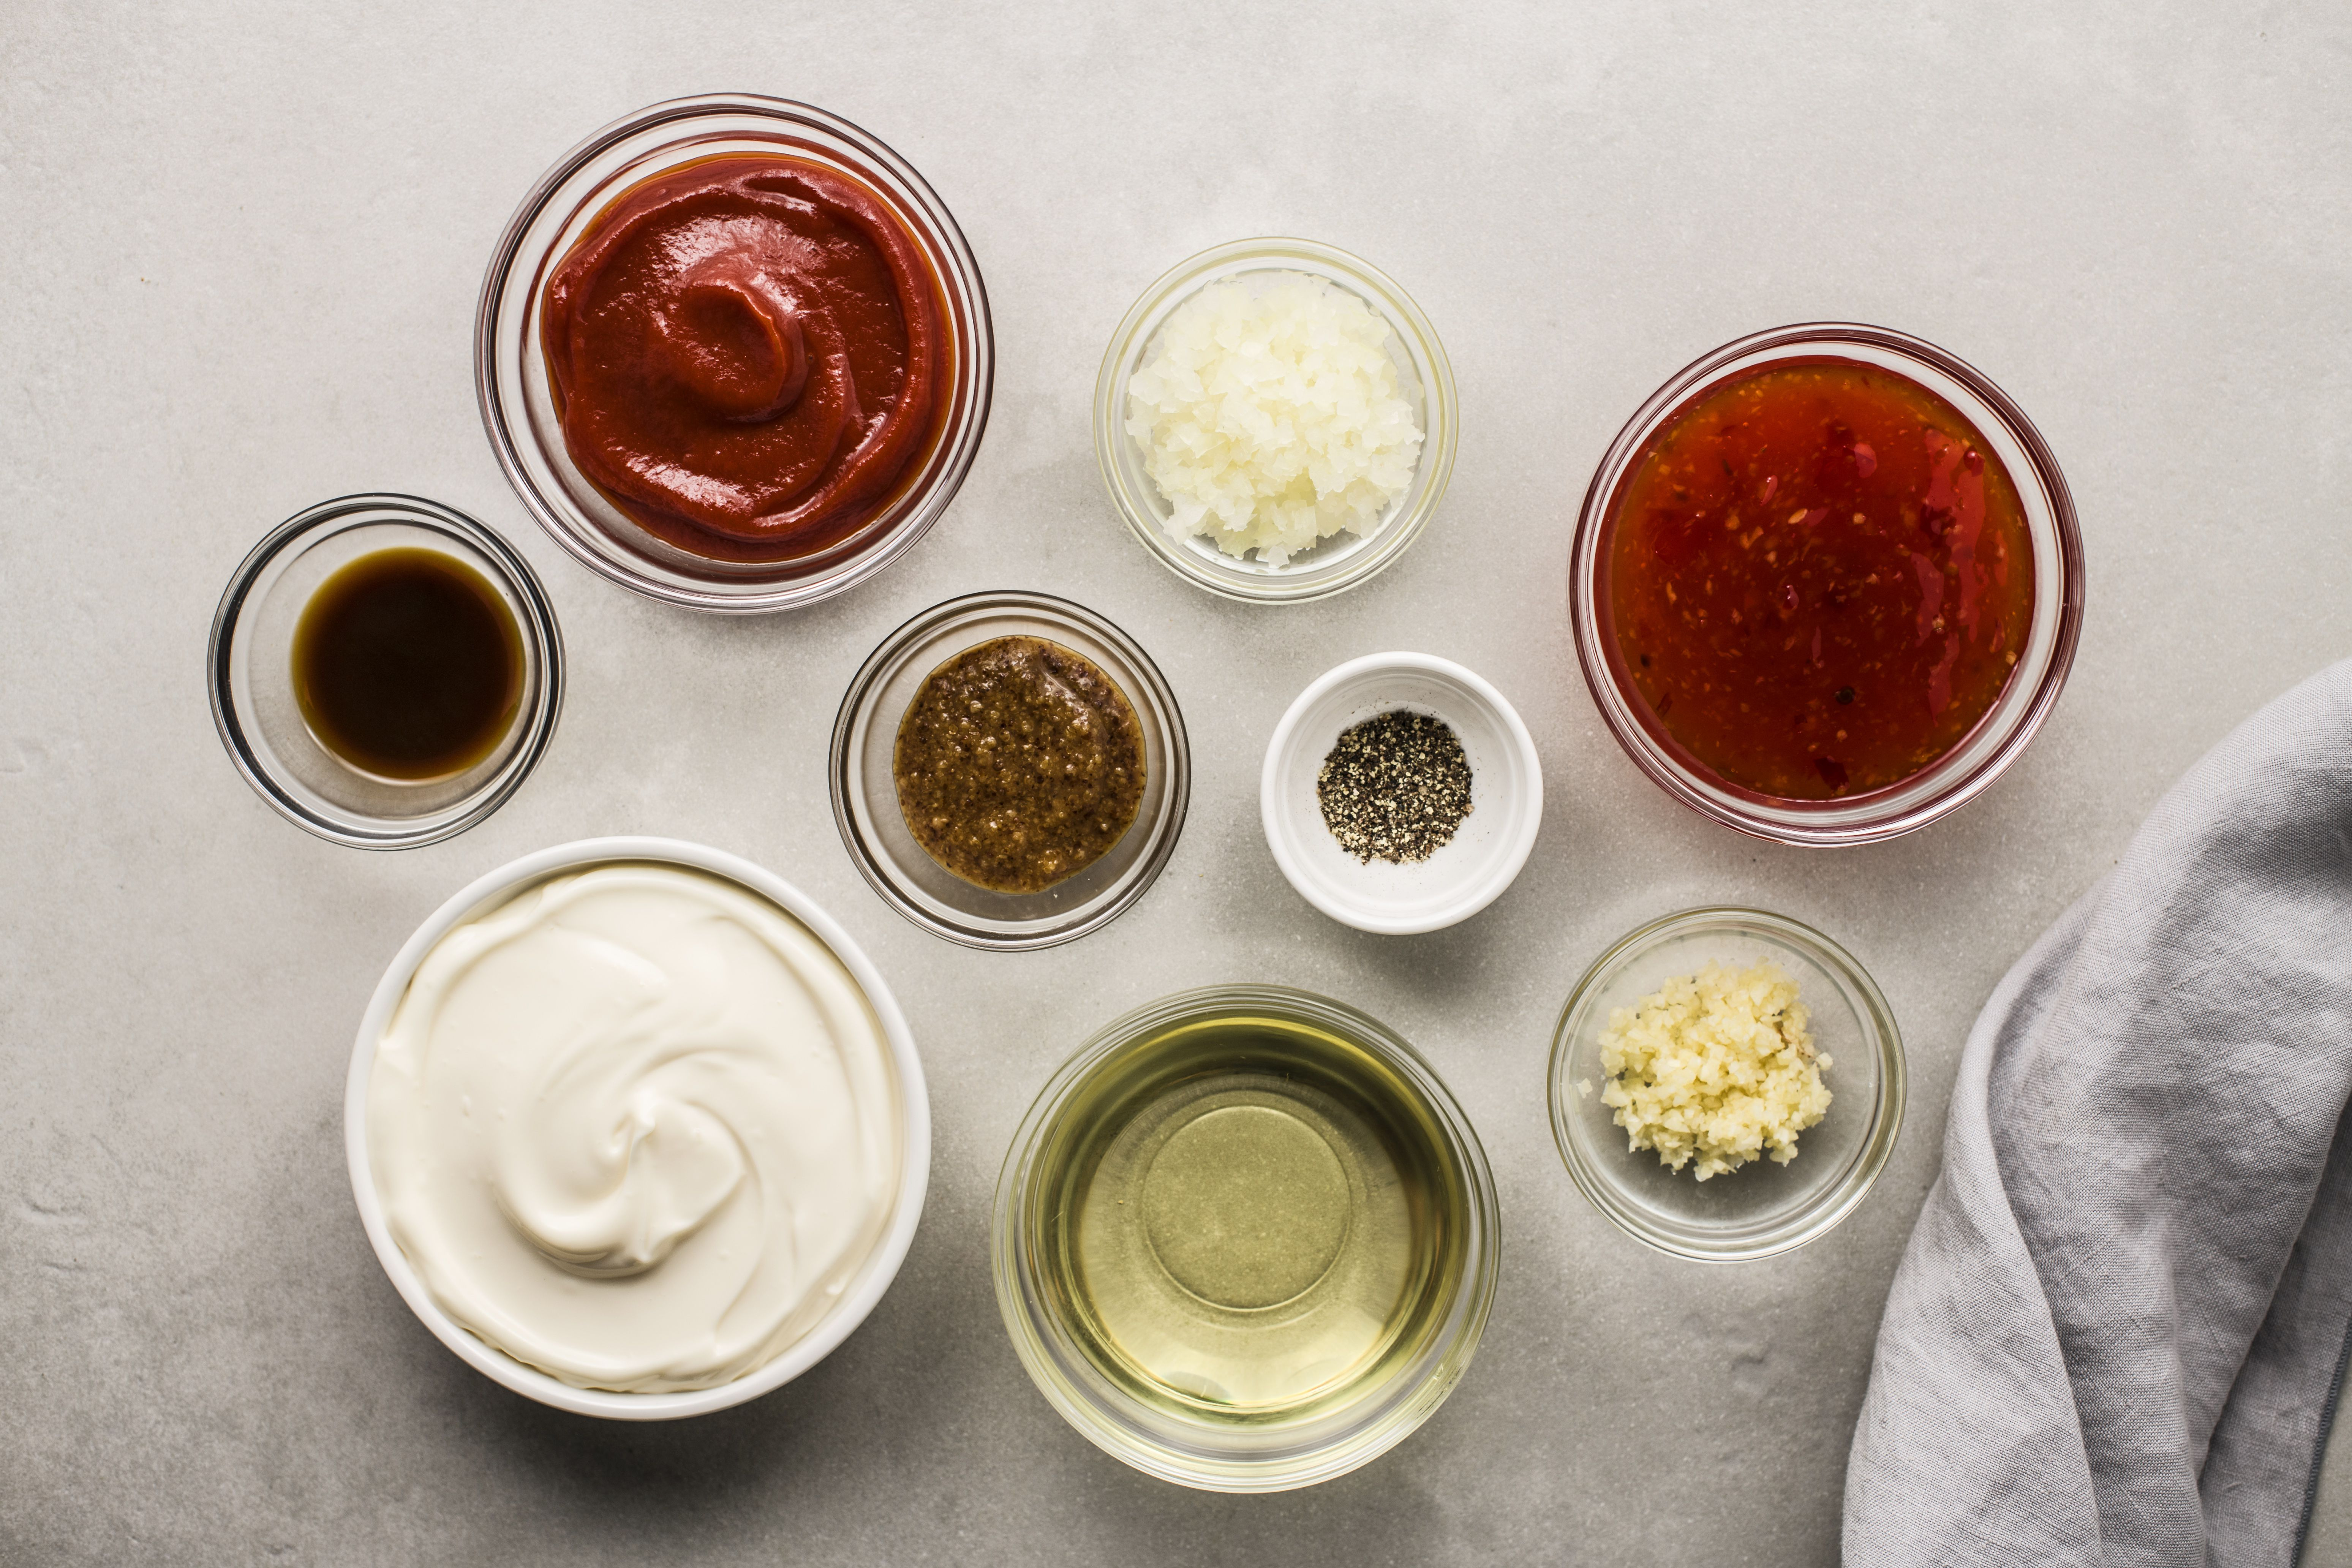 Ingredients for classic Southern comeback sauce